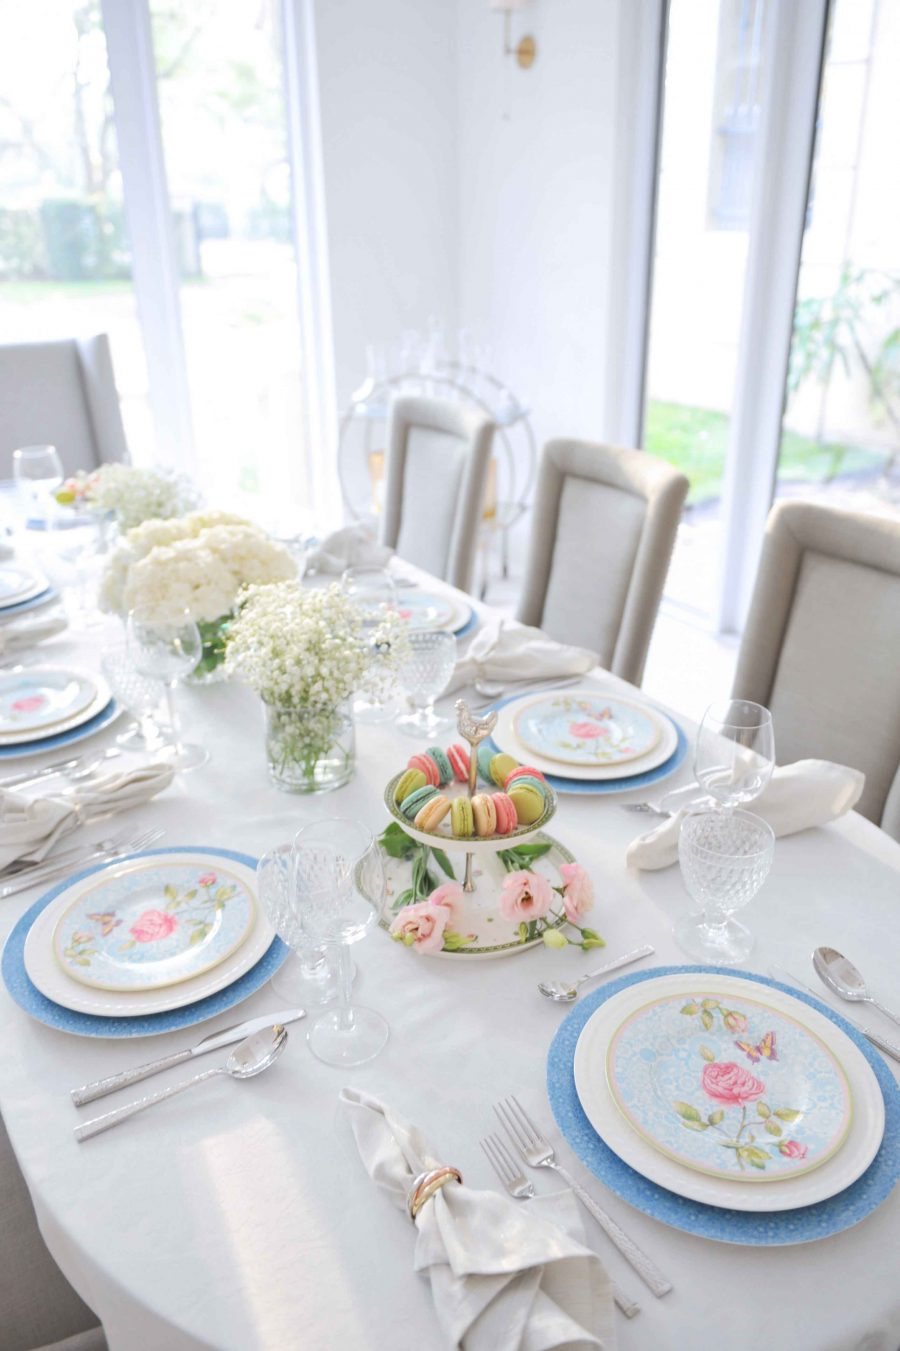 Easter lunch with villeroy boch fashionable hostess - Villeroy and bosh ...